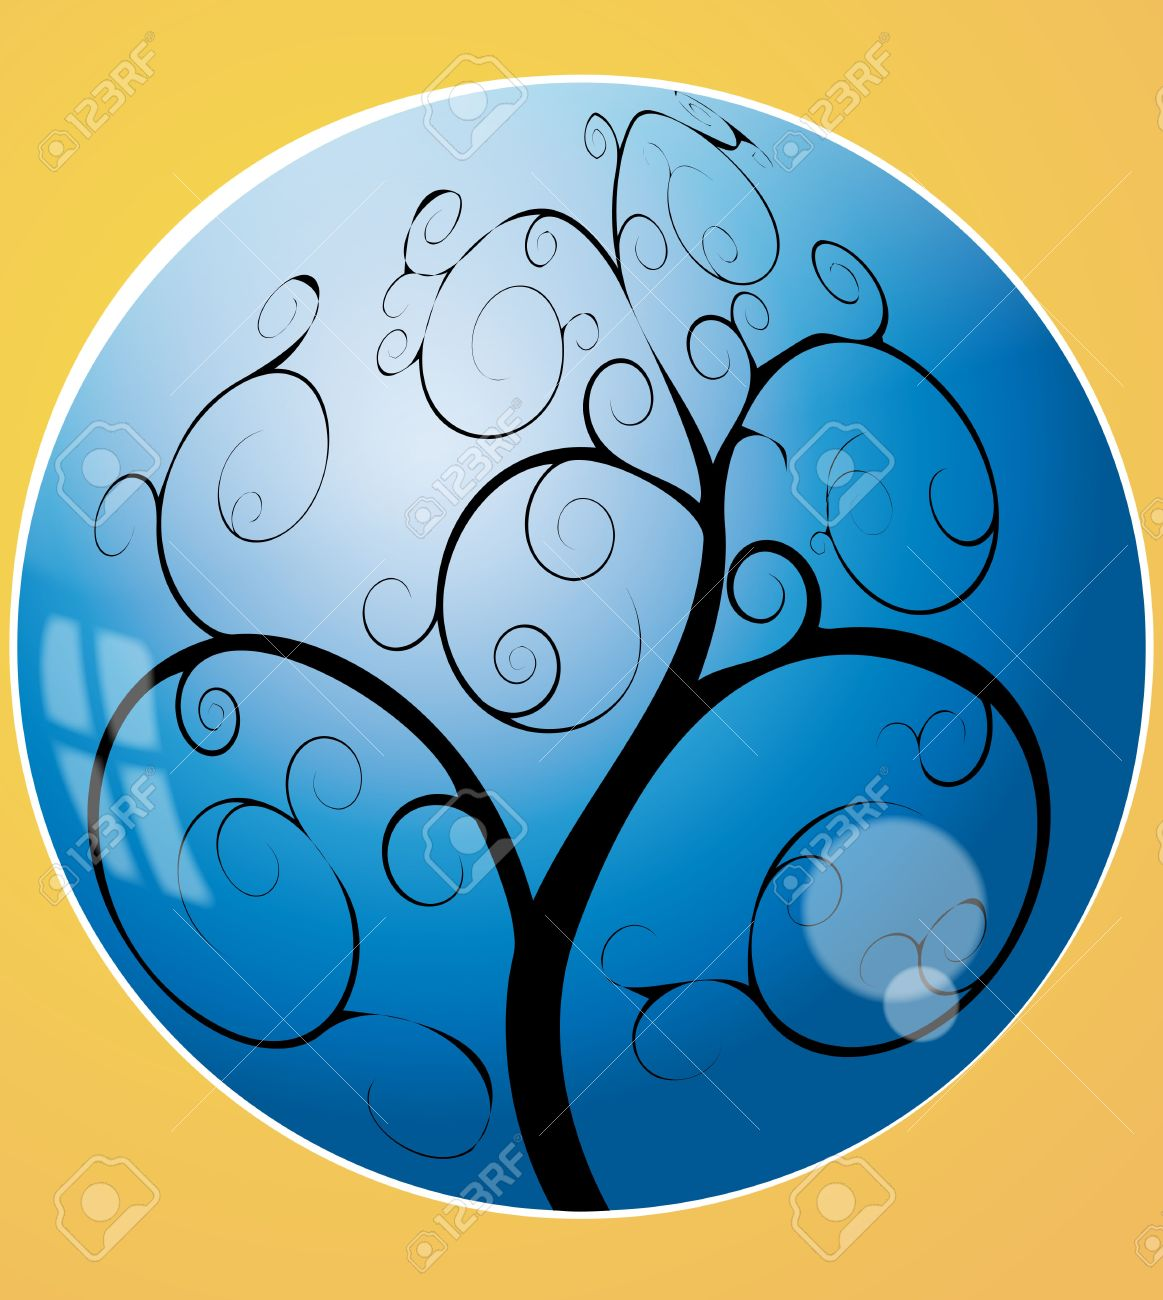 Illustration Of Swirl Tree In The Blue Sphere Royalty Free.